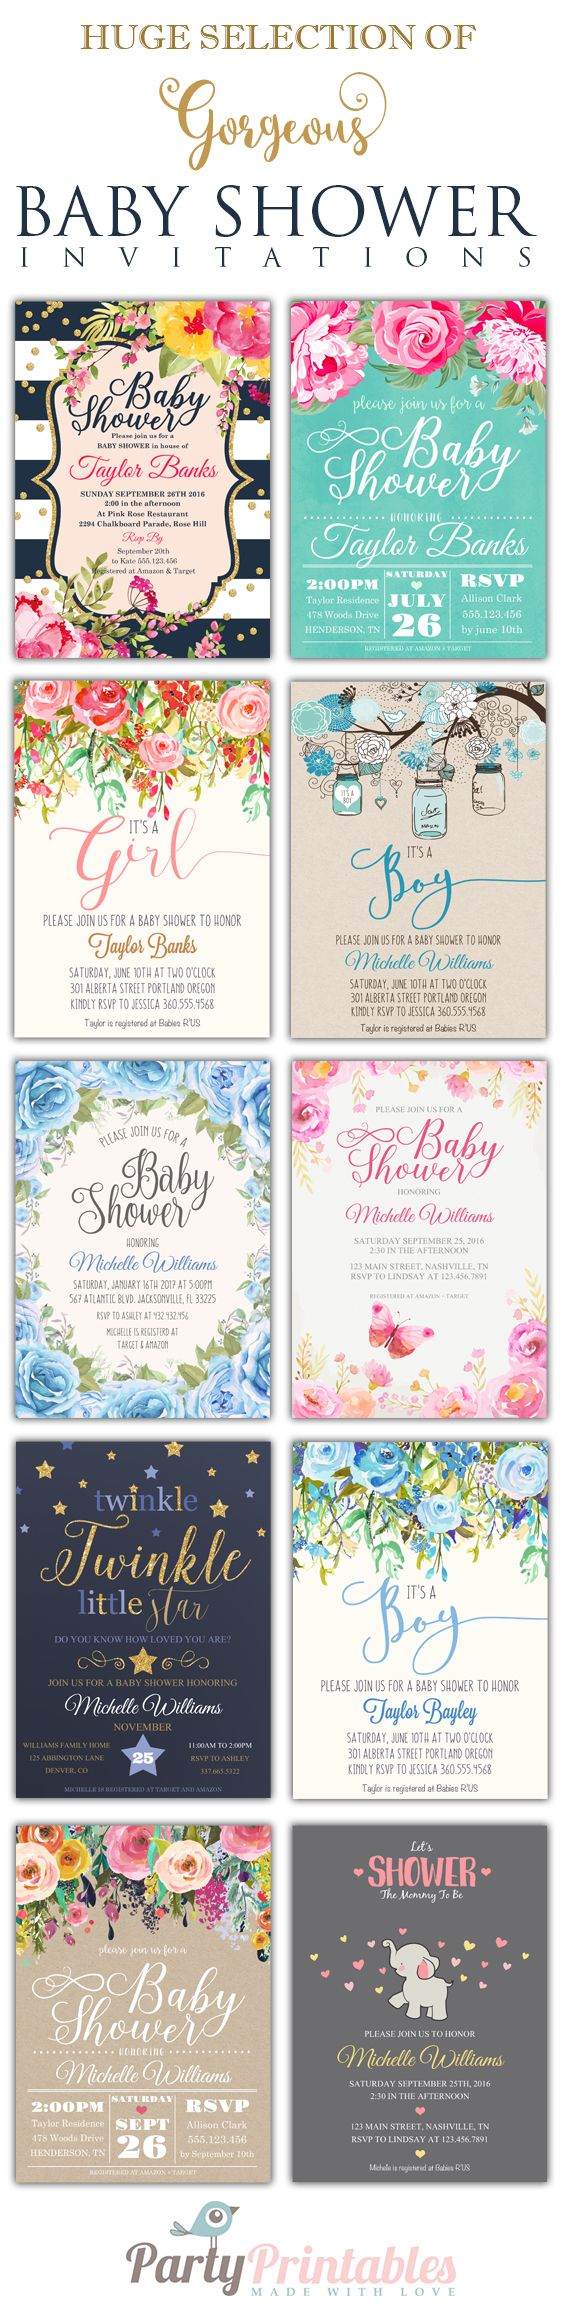 baby shower invitation for twins%0A Planning For A Baby Shower